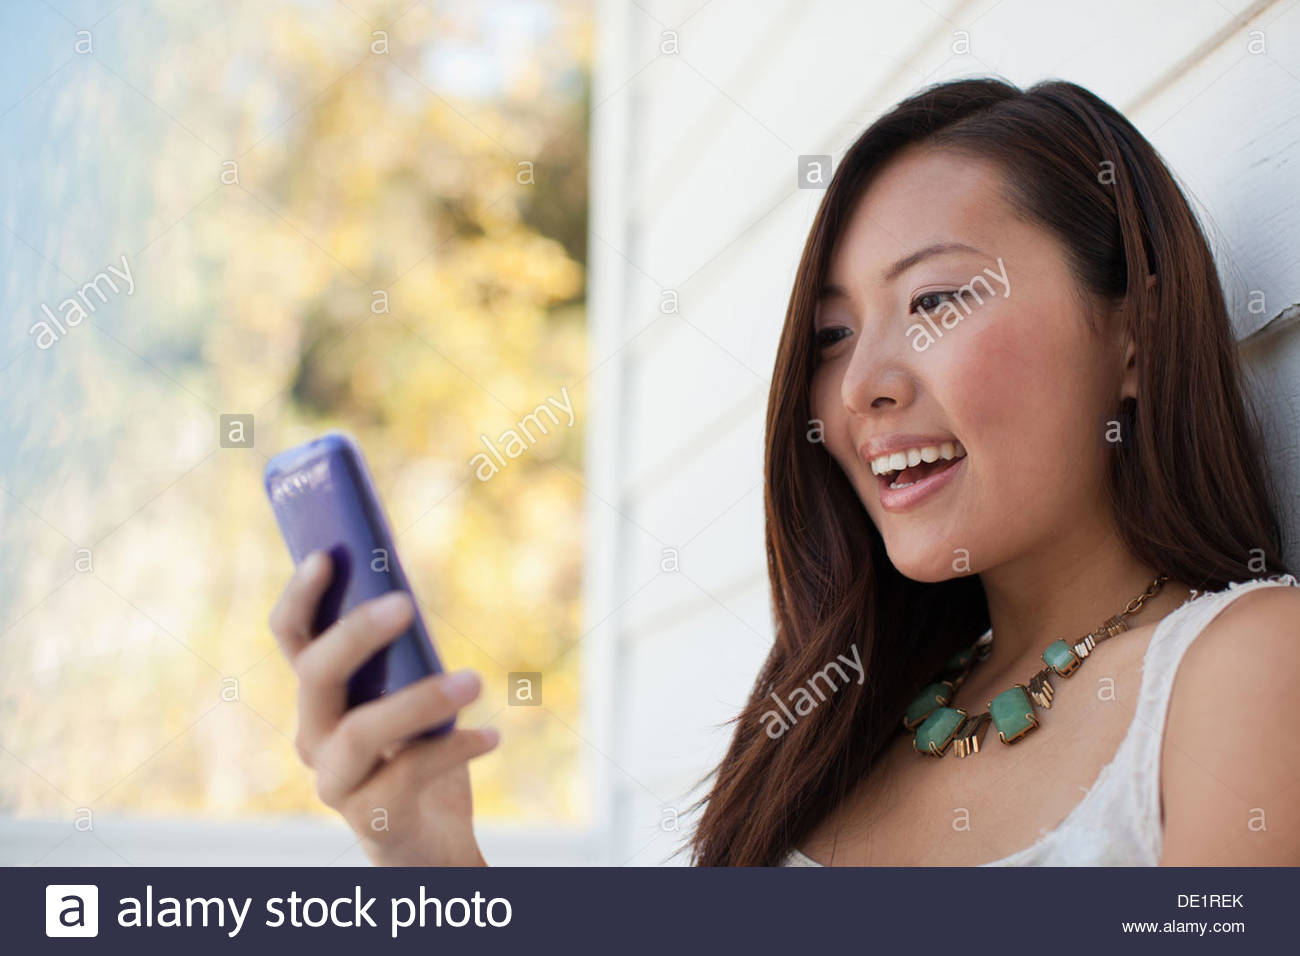 Smiling woman using cell phone outdoors Photo Stock